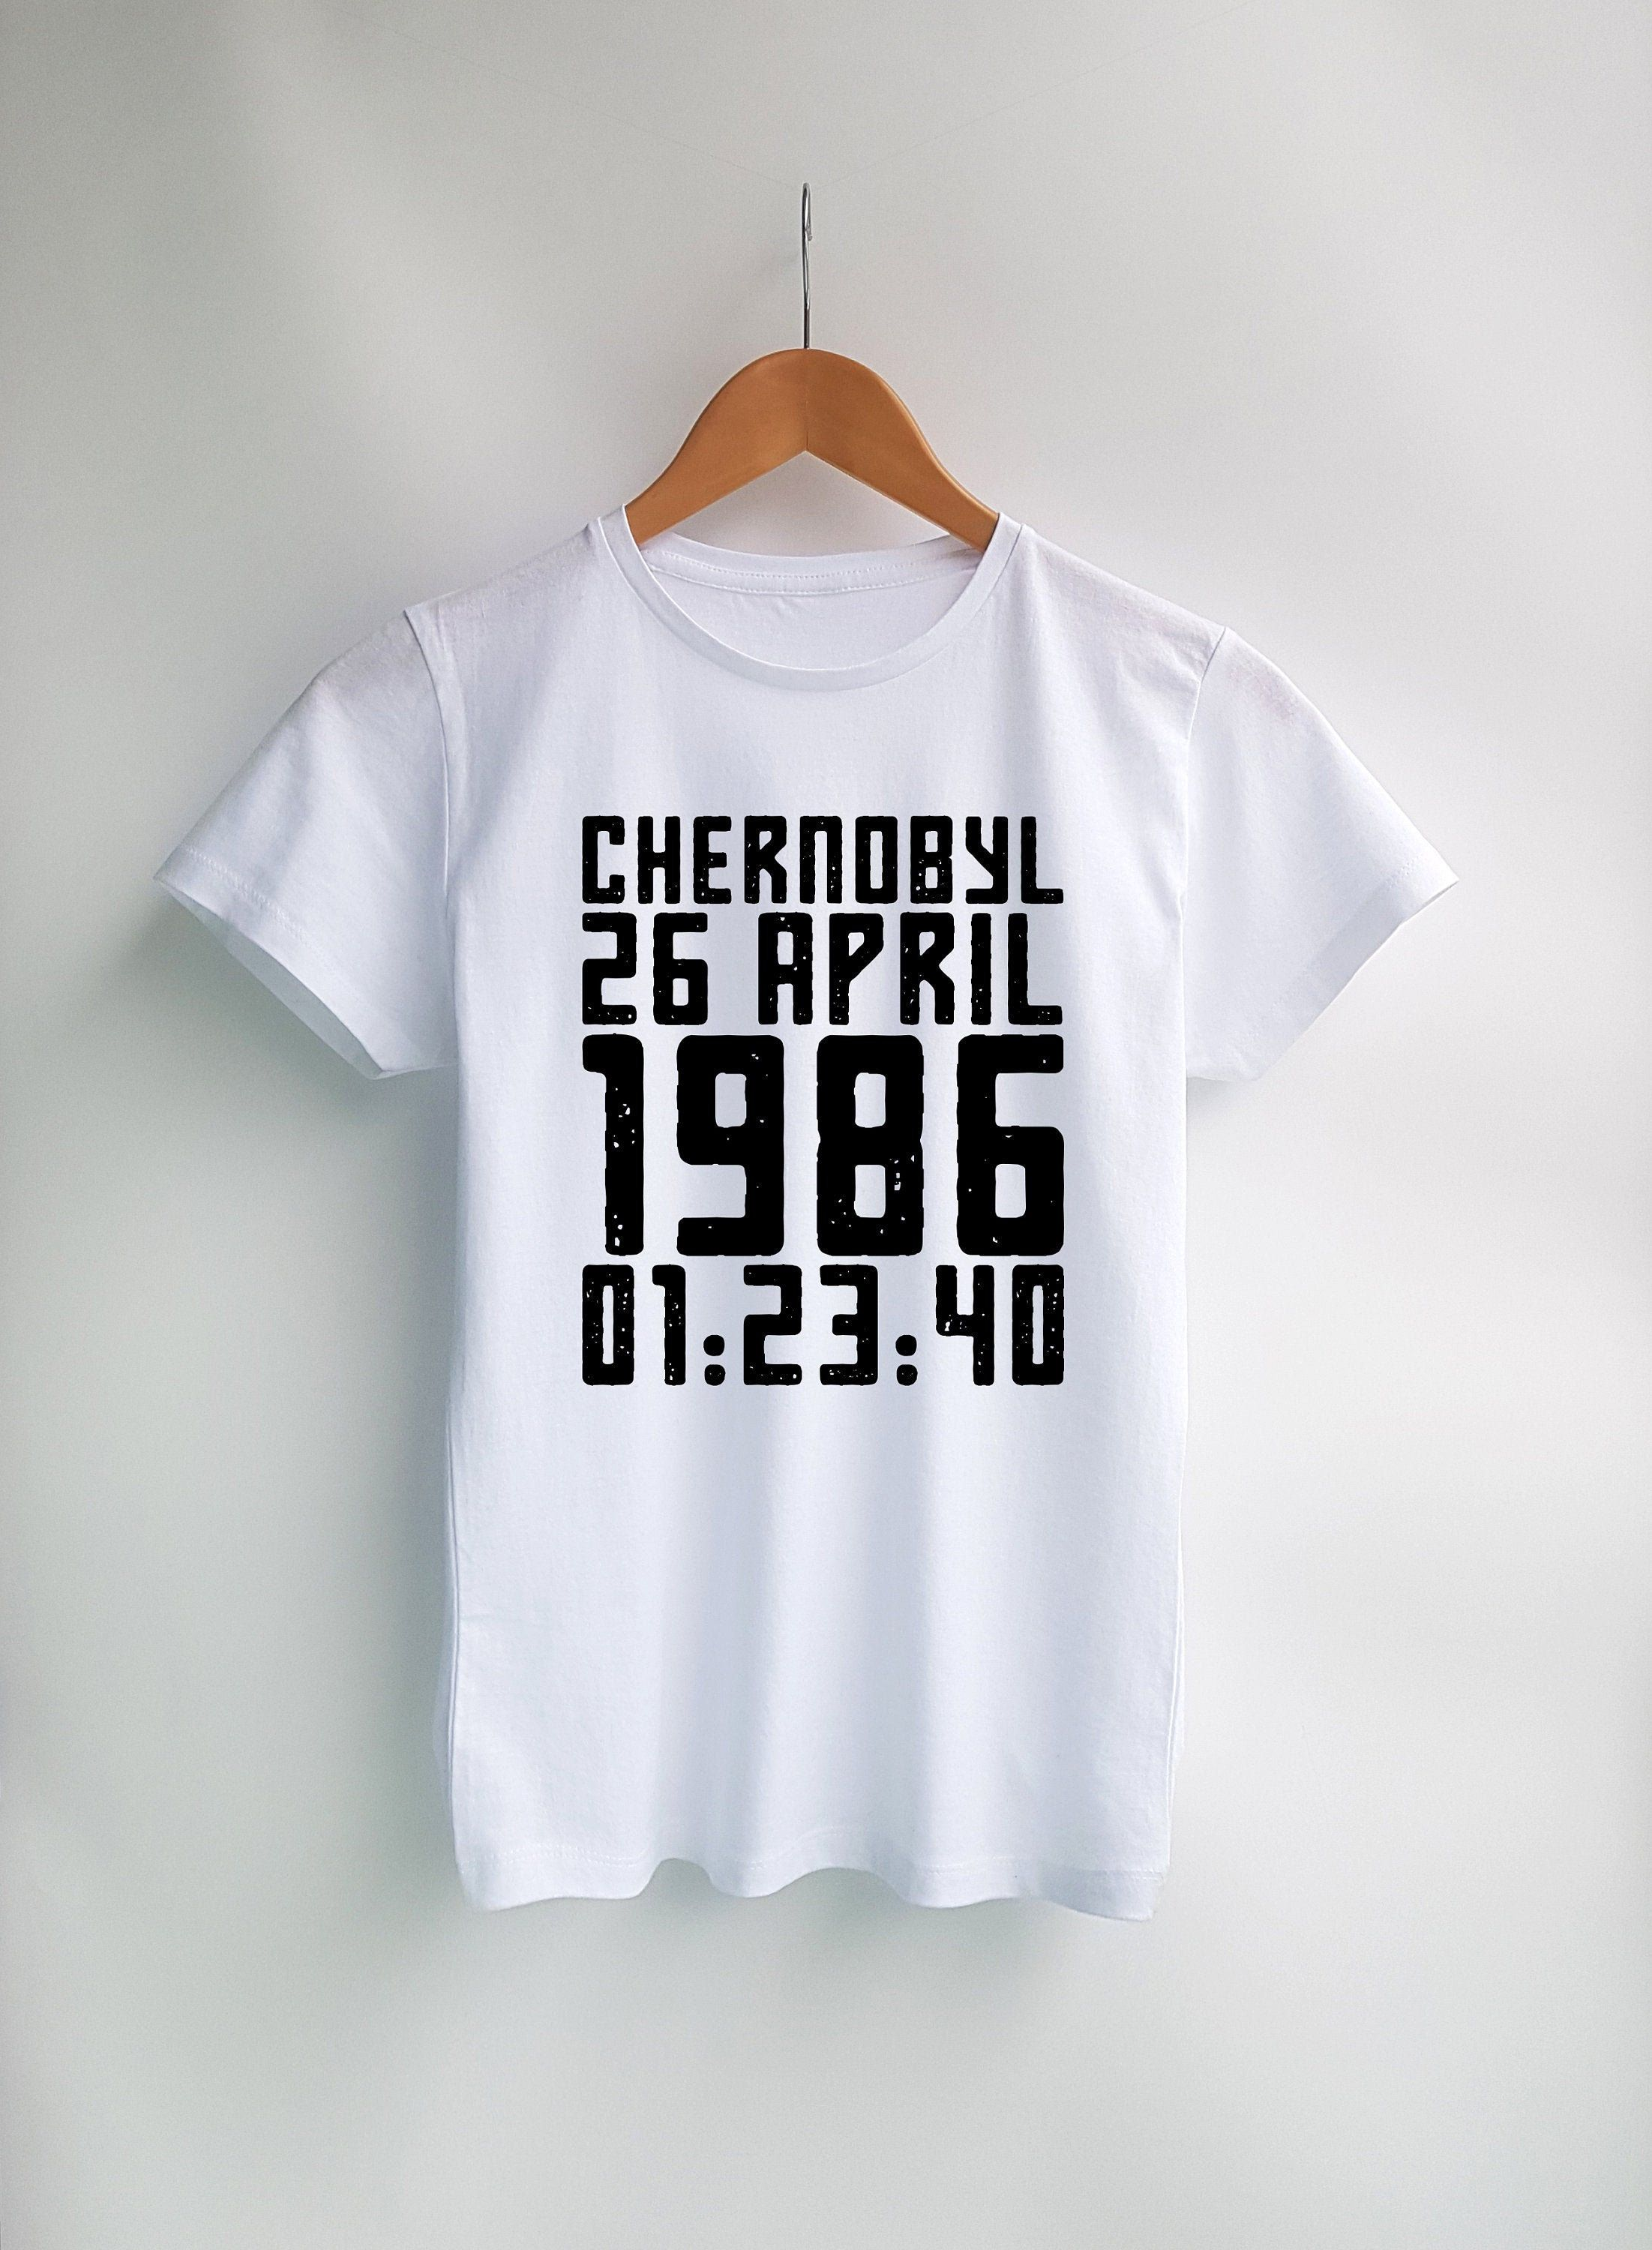 Chernobyl Shirt Pripyat Tv Series Chernobyl Printed Shirts